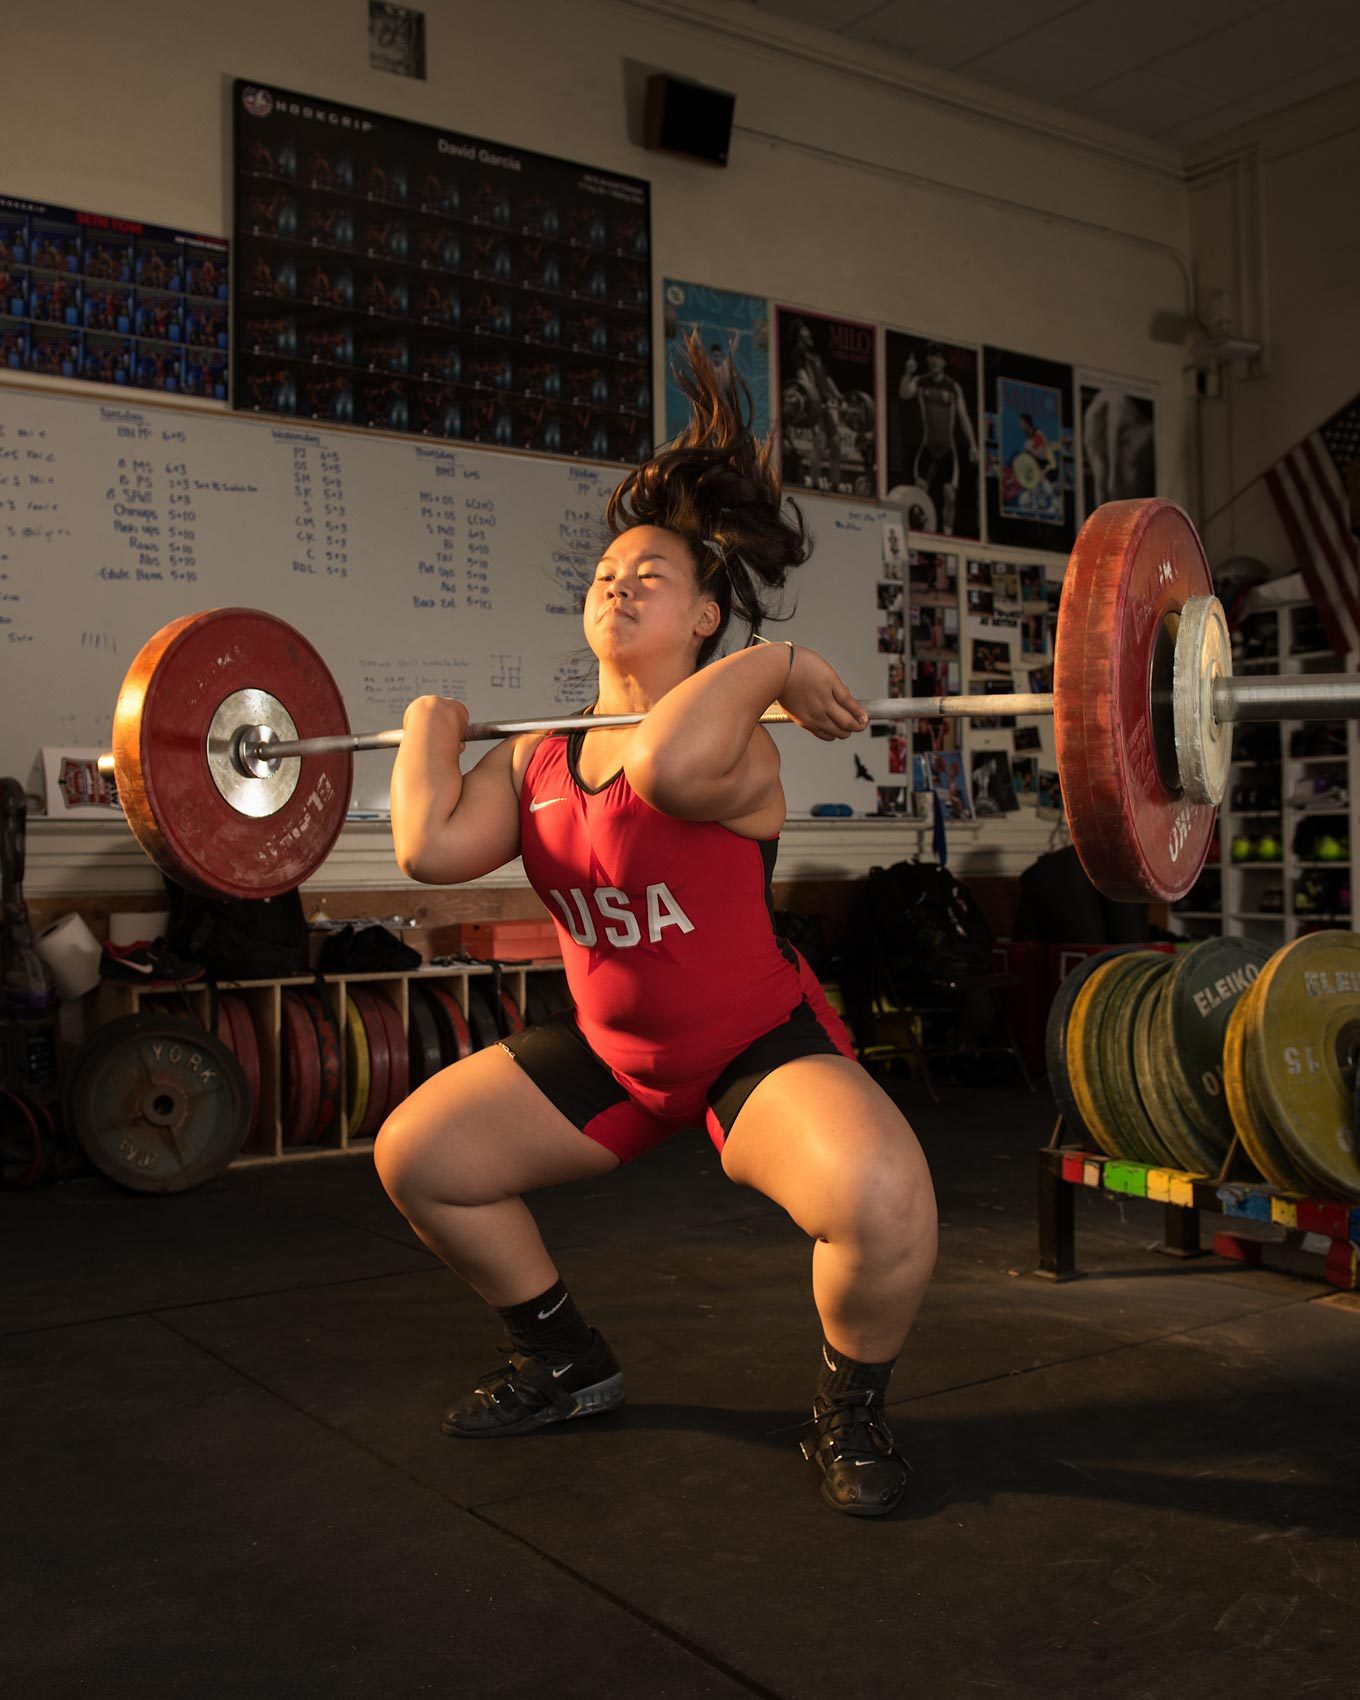 JMP_Port_FallPromo2018_WeightLifter_Action_194_w4_fk_RGB_2.JPG